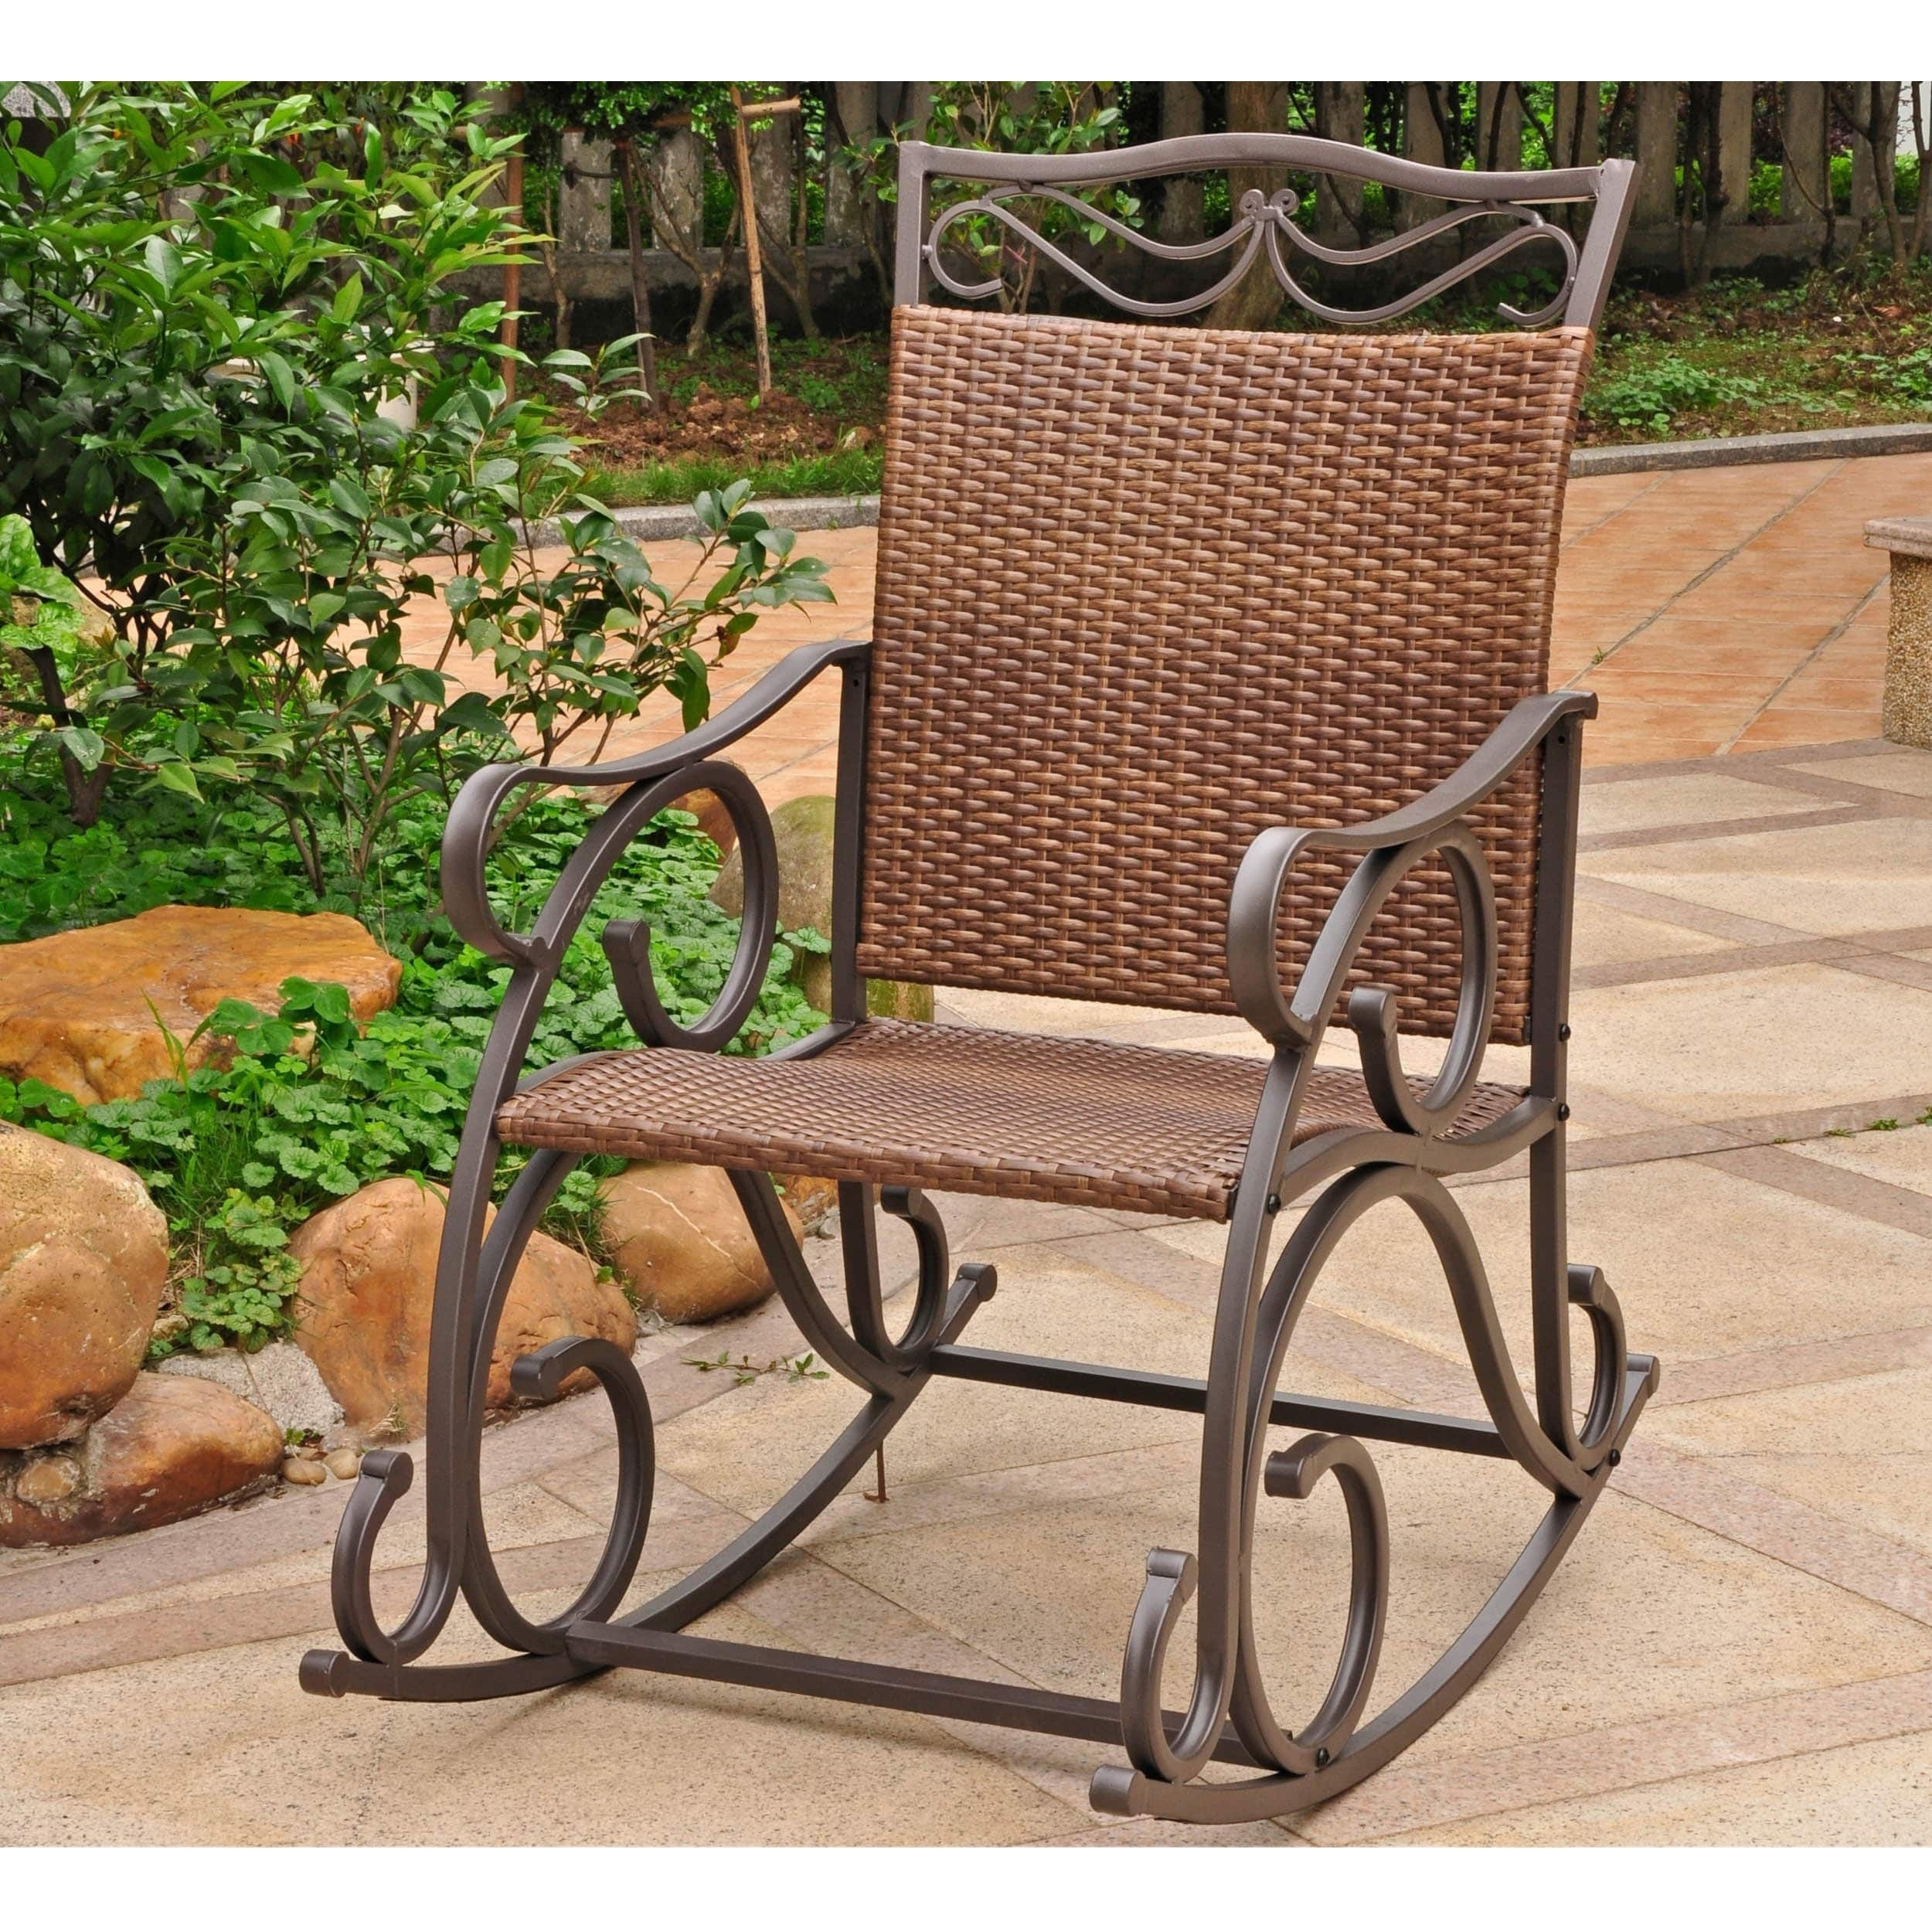 Chair | Bedroom Rocking Chair Heavy Duty Rocking Chair Outdoor Intended For Outdoor Vinyl Rocking Chairs (View 1 of 15)